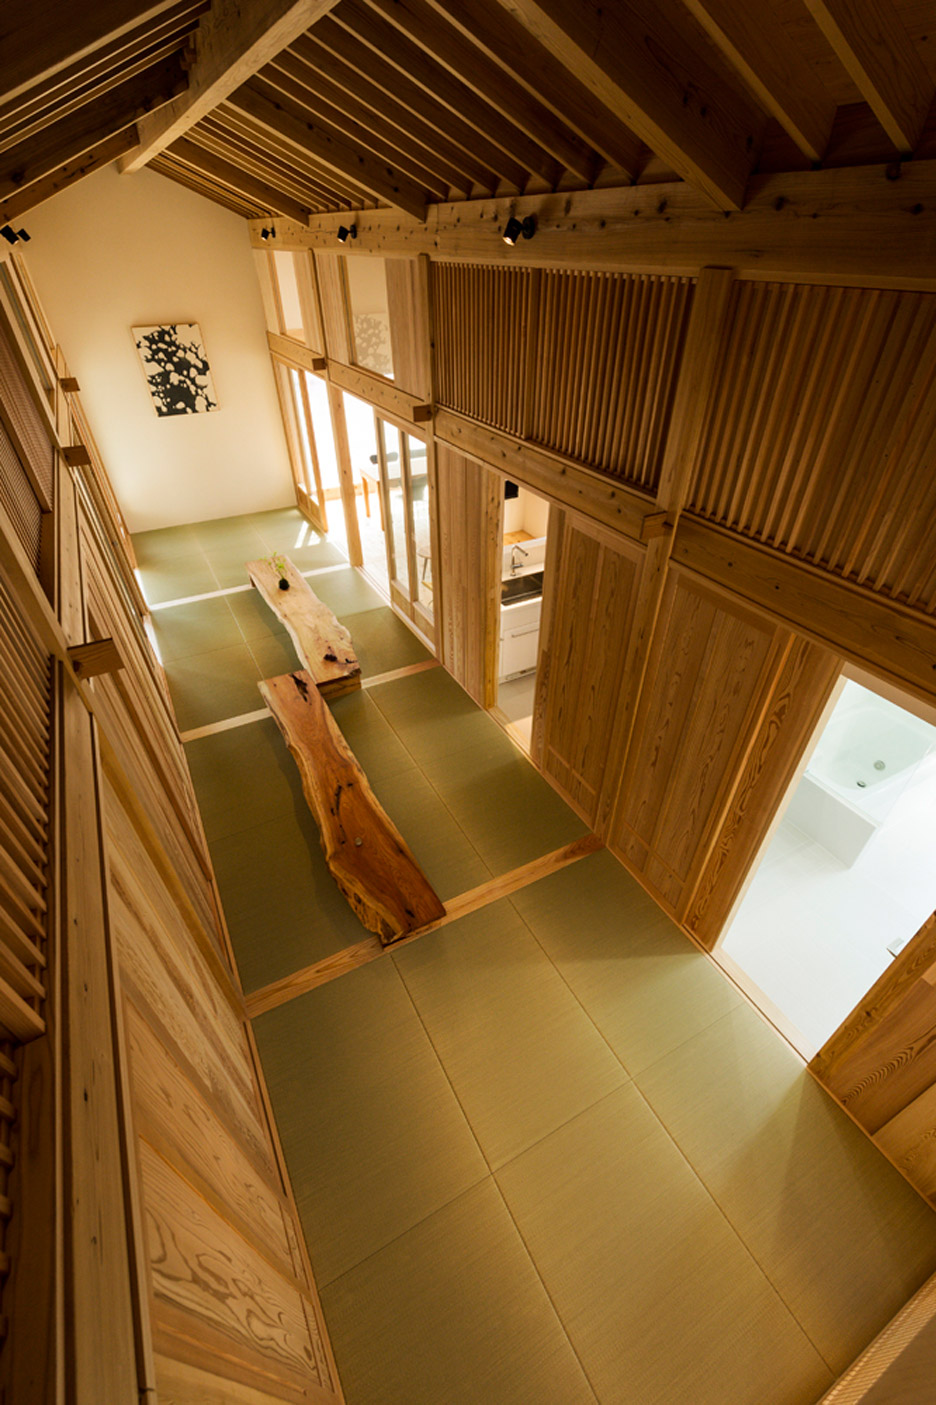 Tatami mats create gridded layout for Tokmotos Inari House